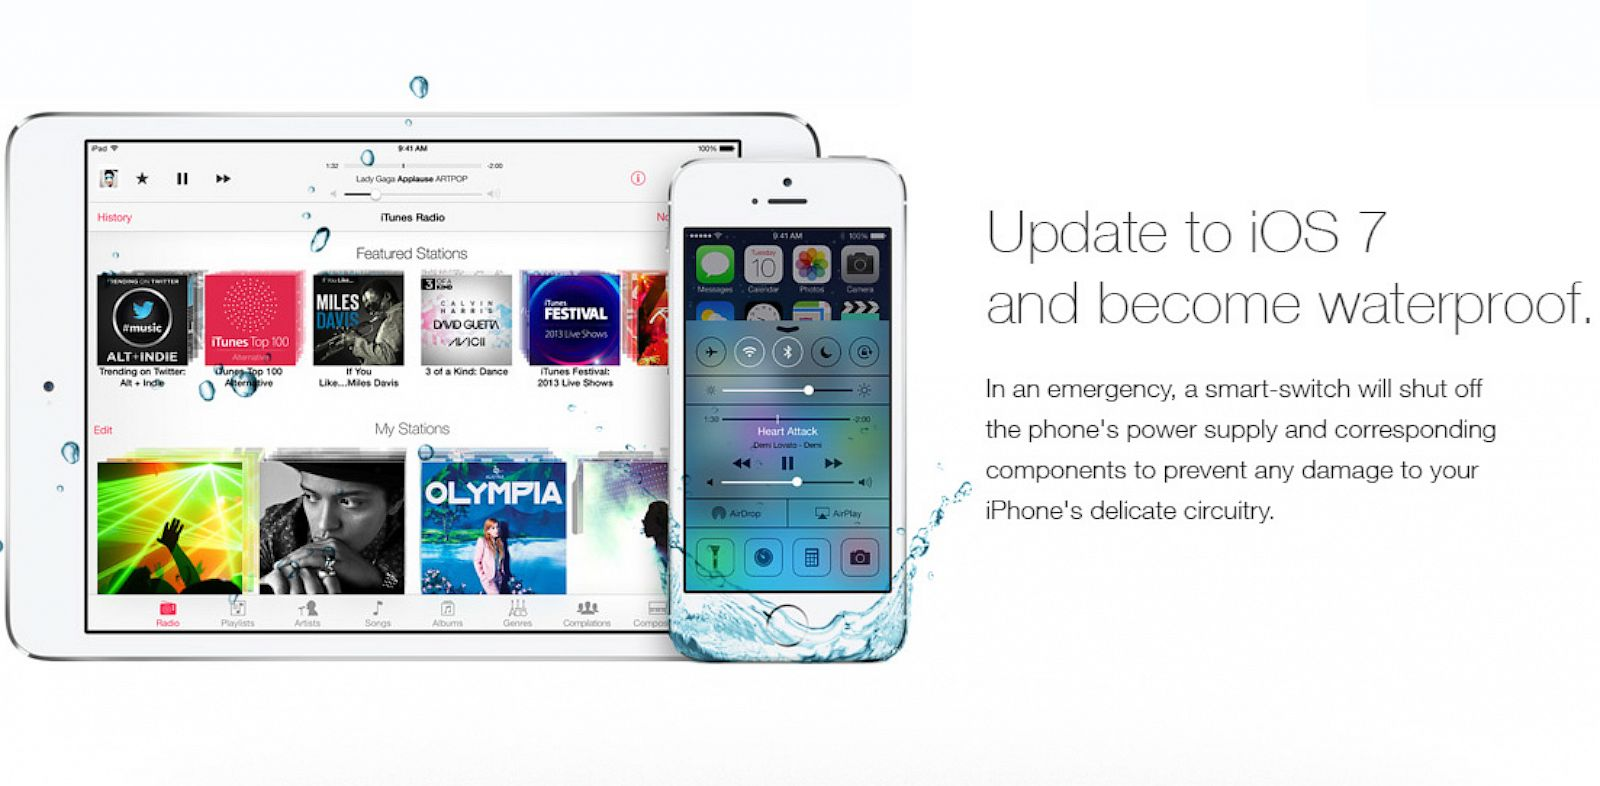 PHOTO: An internet message board collaborated to work on a fake iOS 7 ad claiming the update makes phones waterproof.